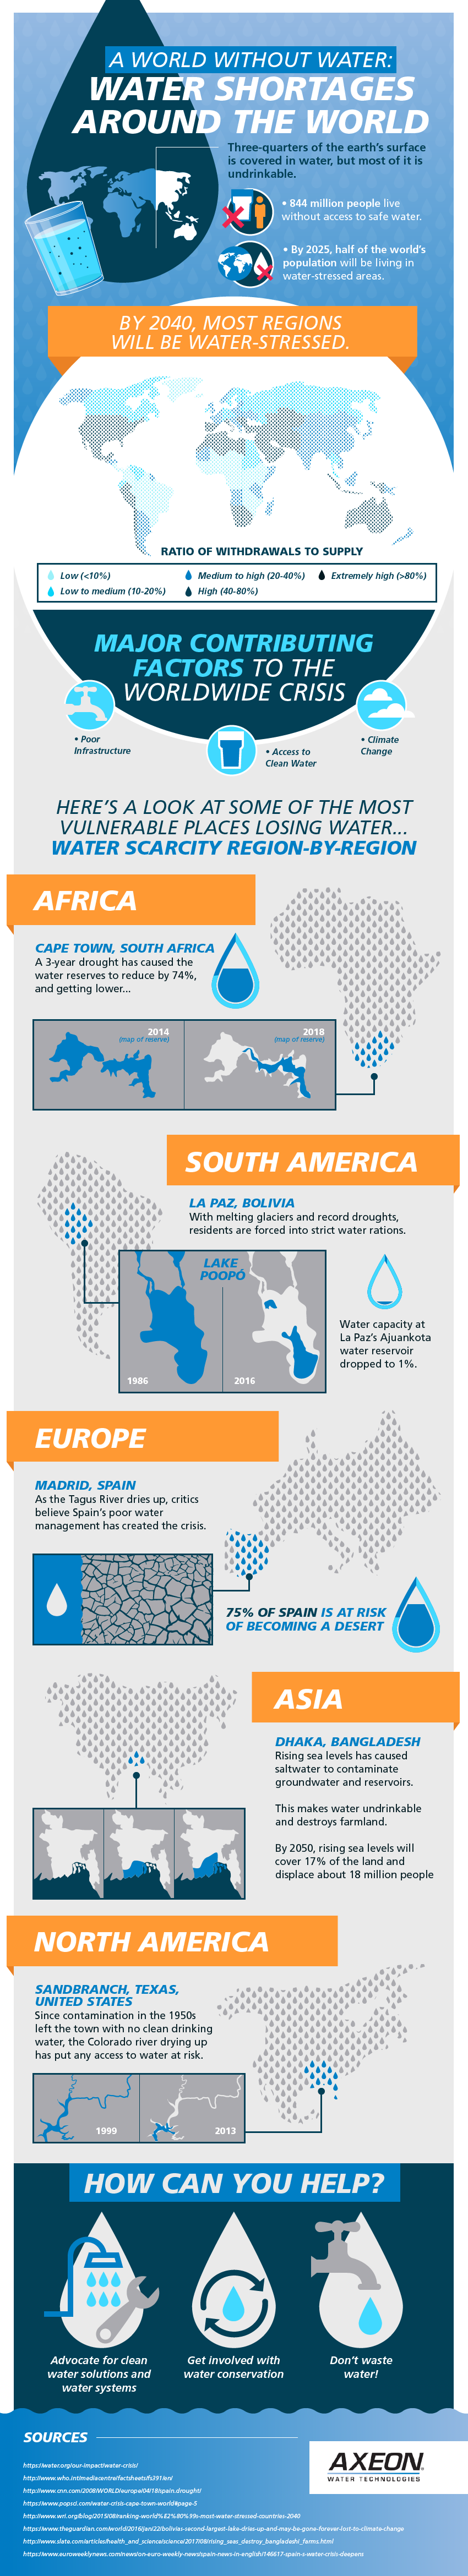 A world without water: water shortages around the world